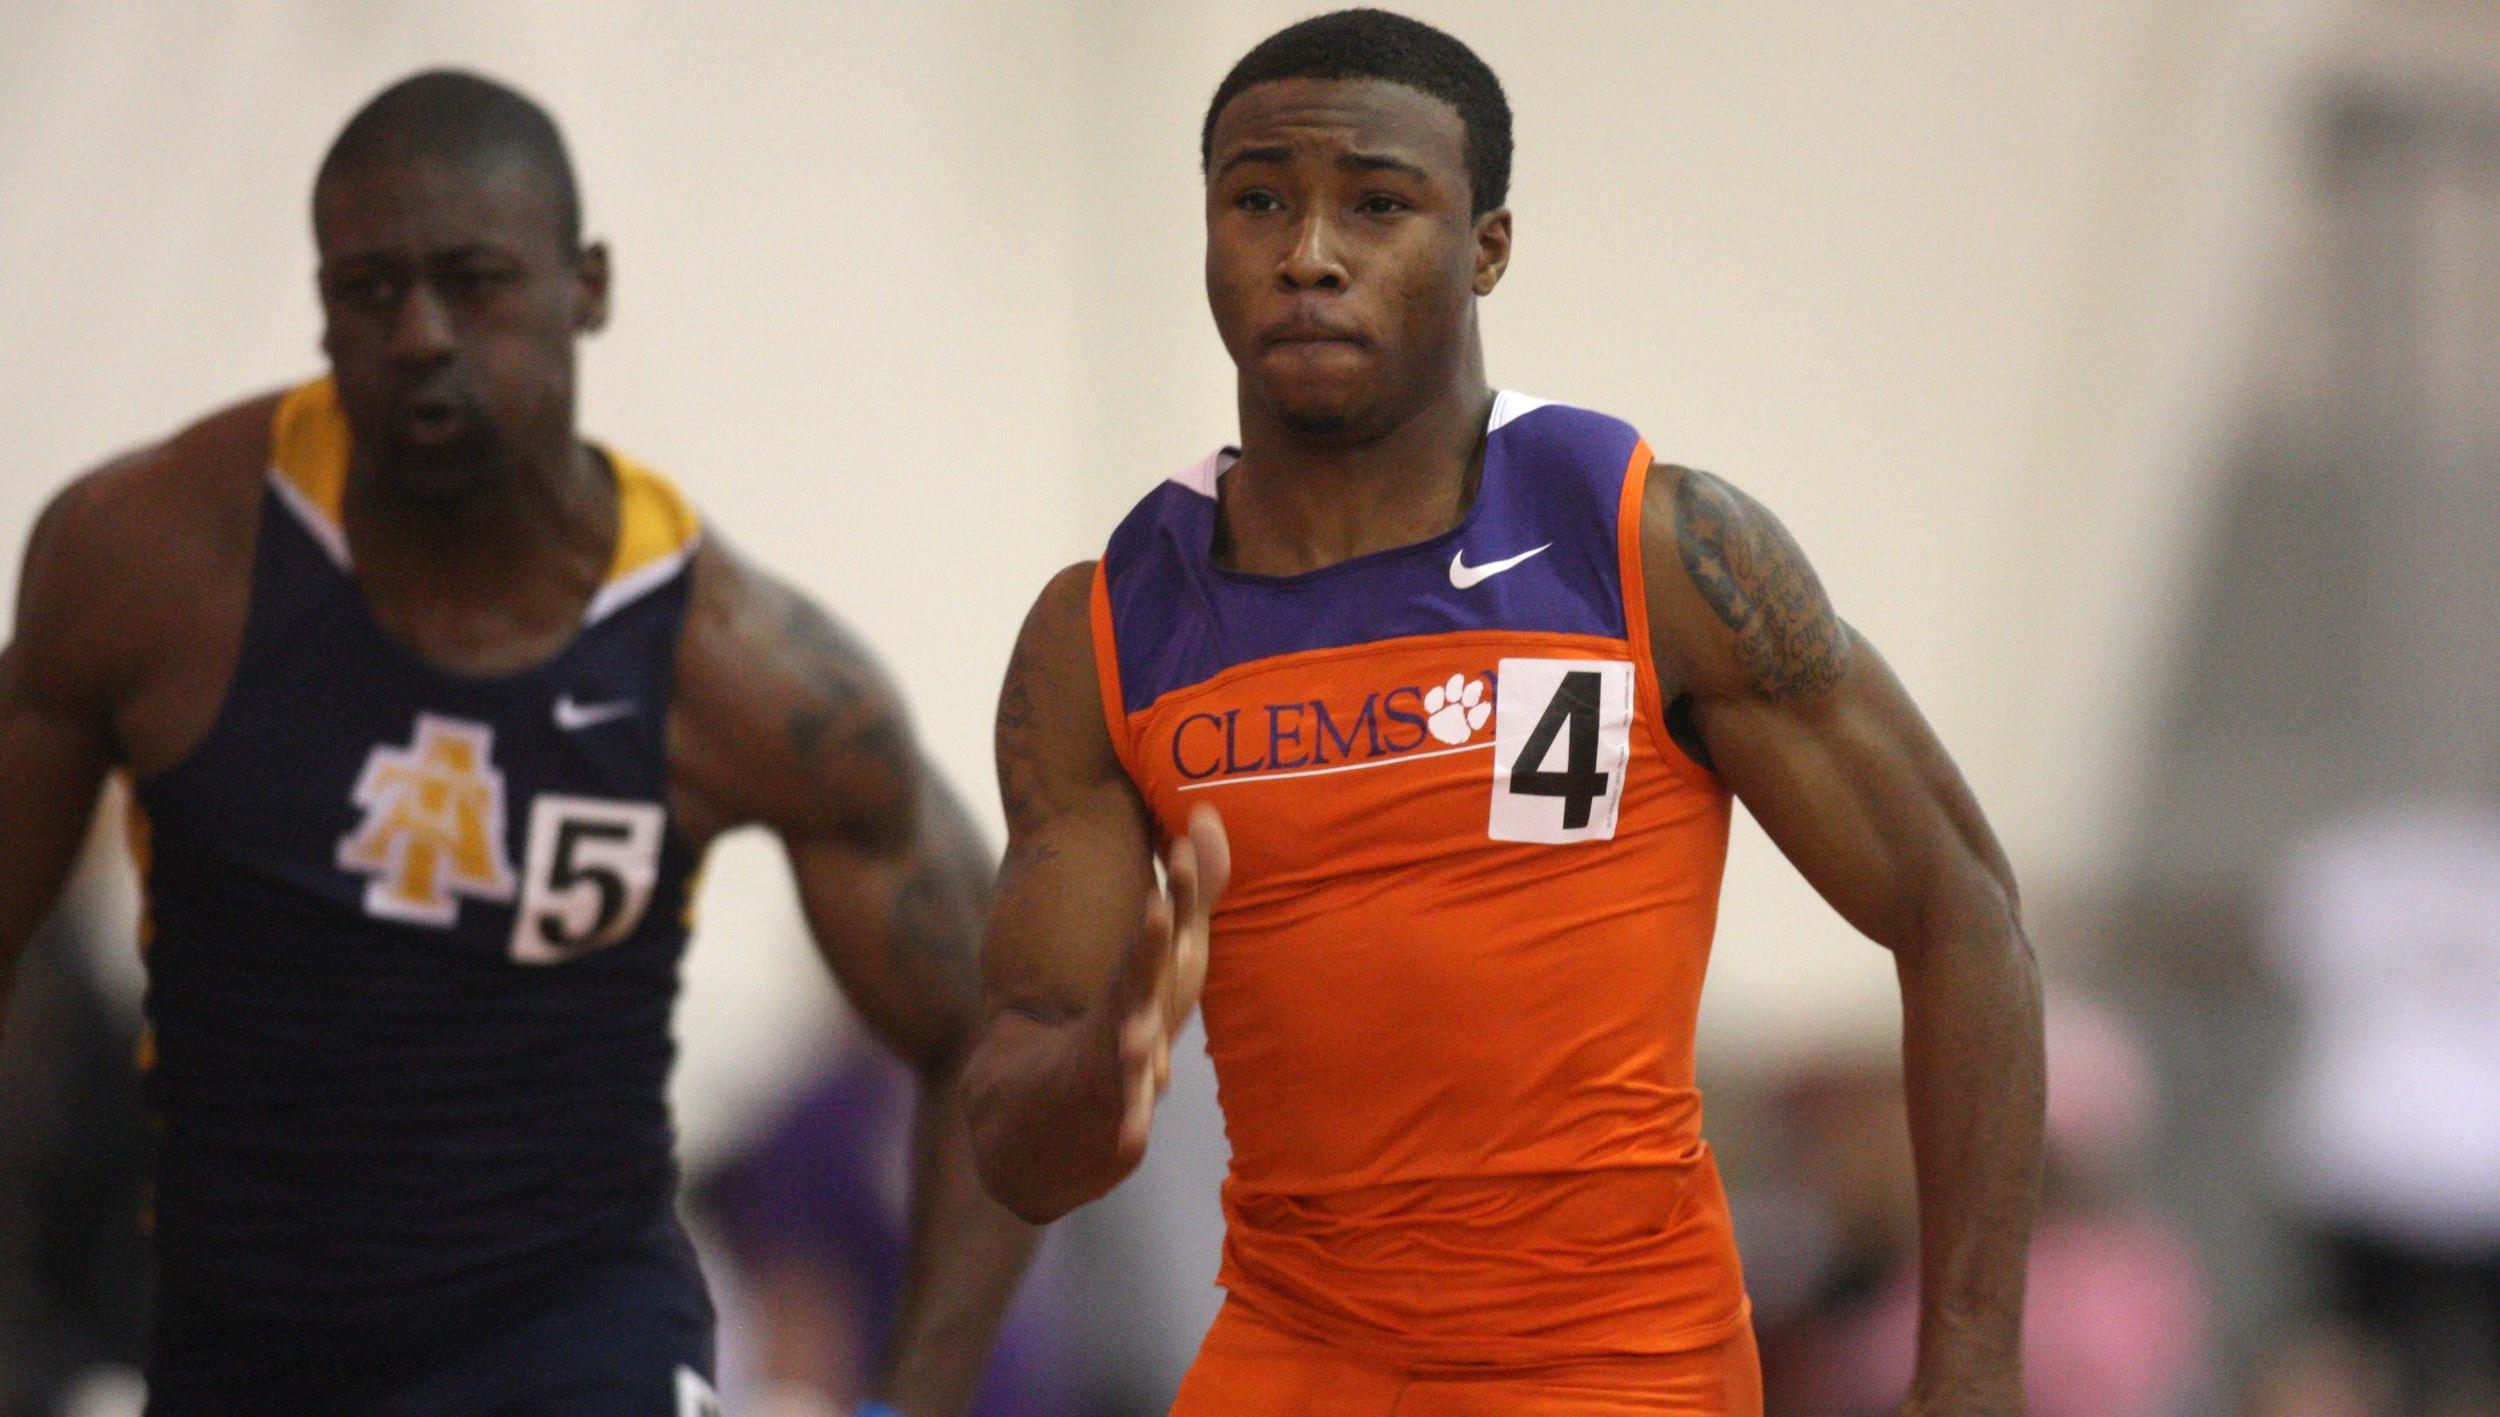 Clemson Track & Field Set for Busy Weekend